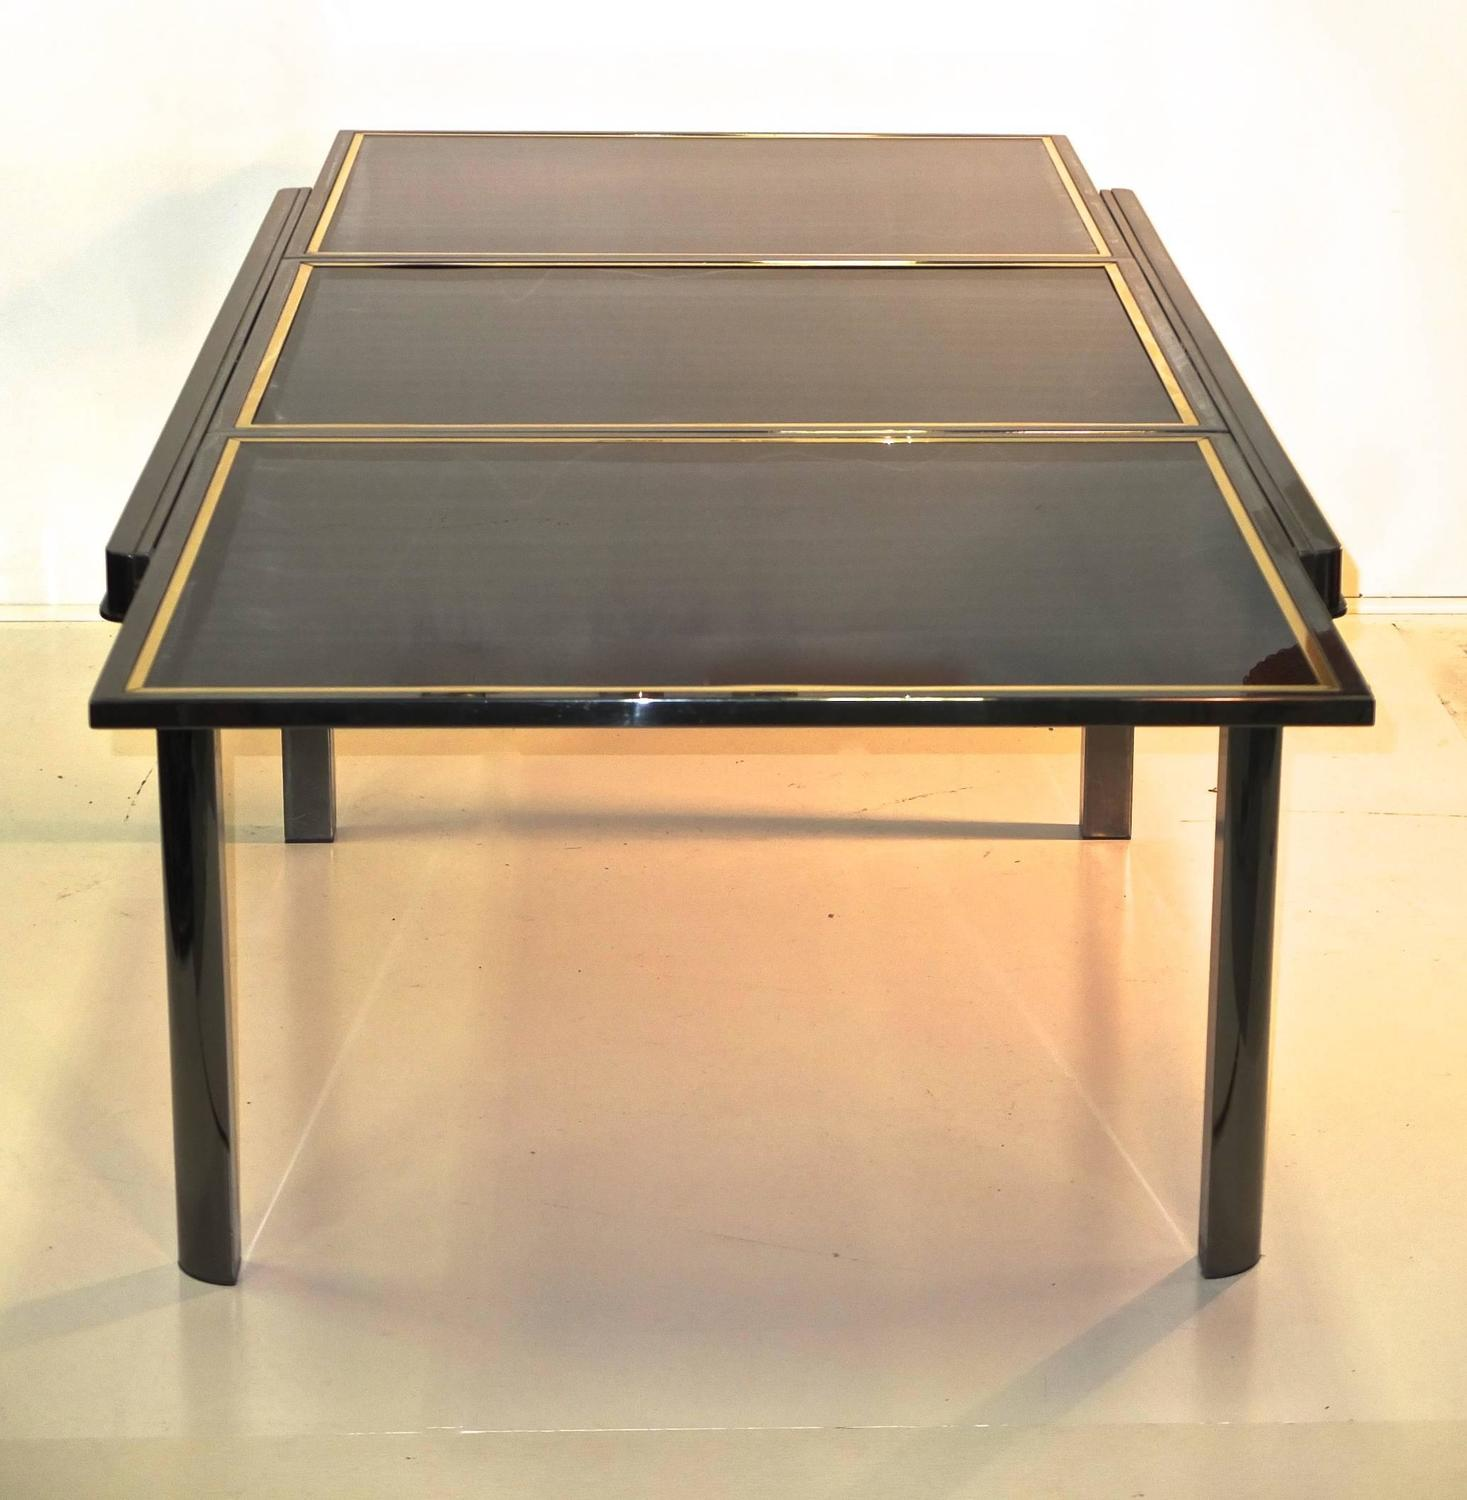 Extending Dining Table Smoked Chrome Black Glass Brass